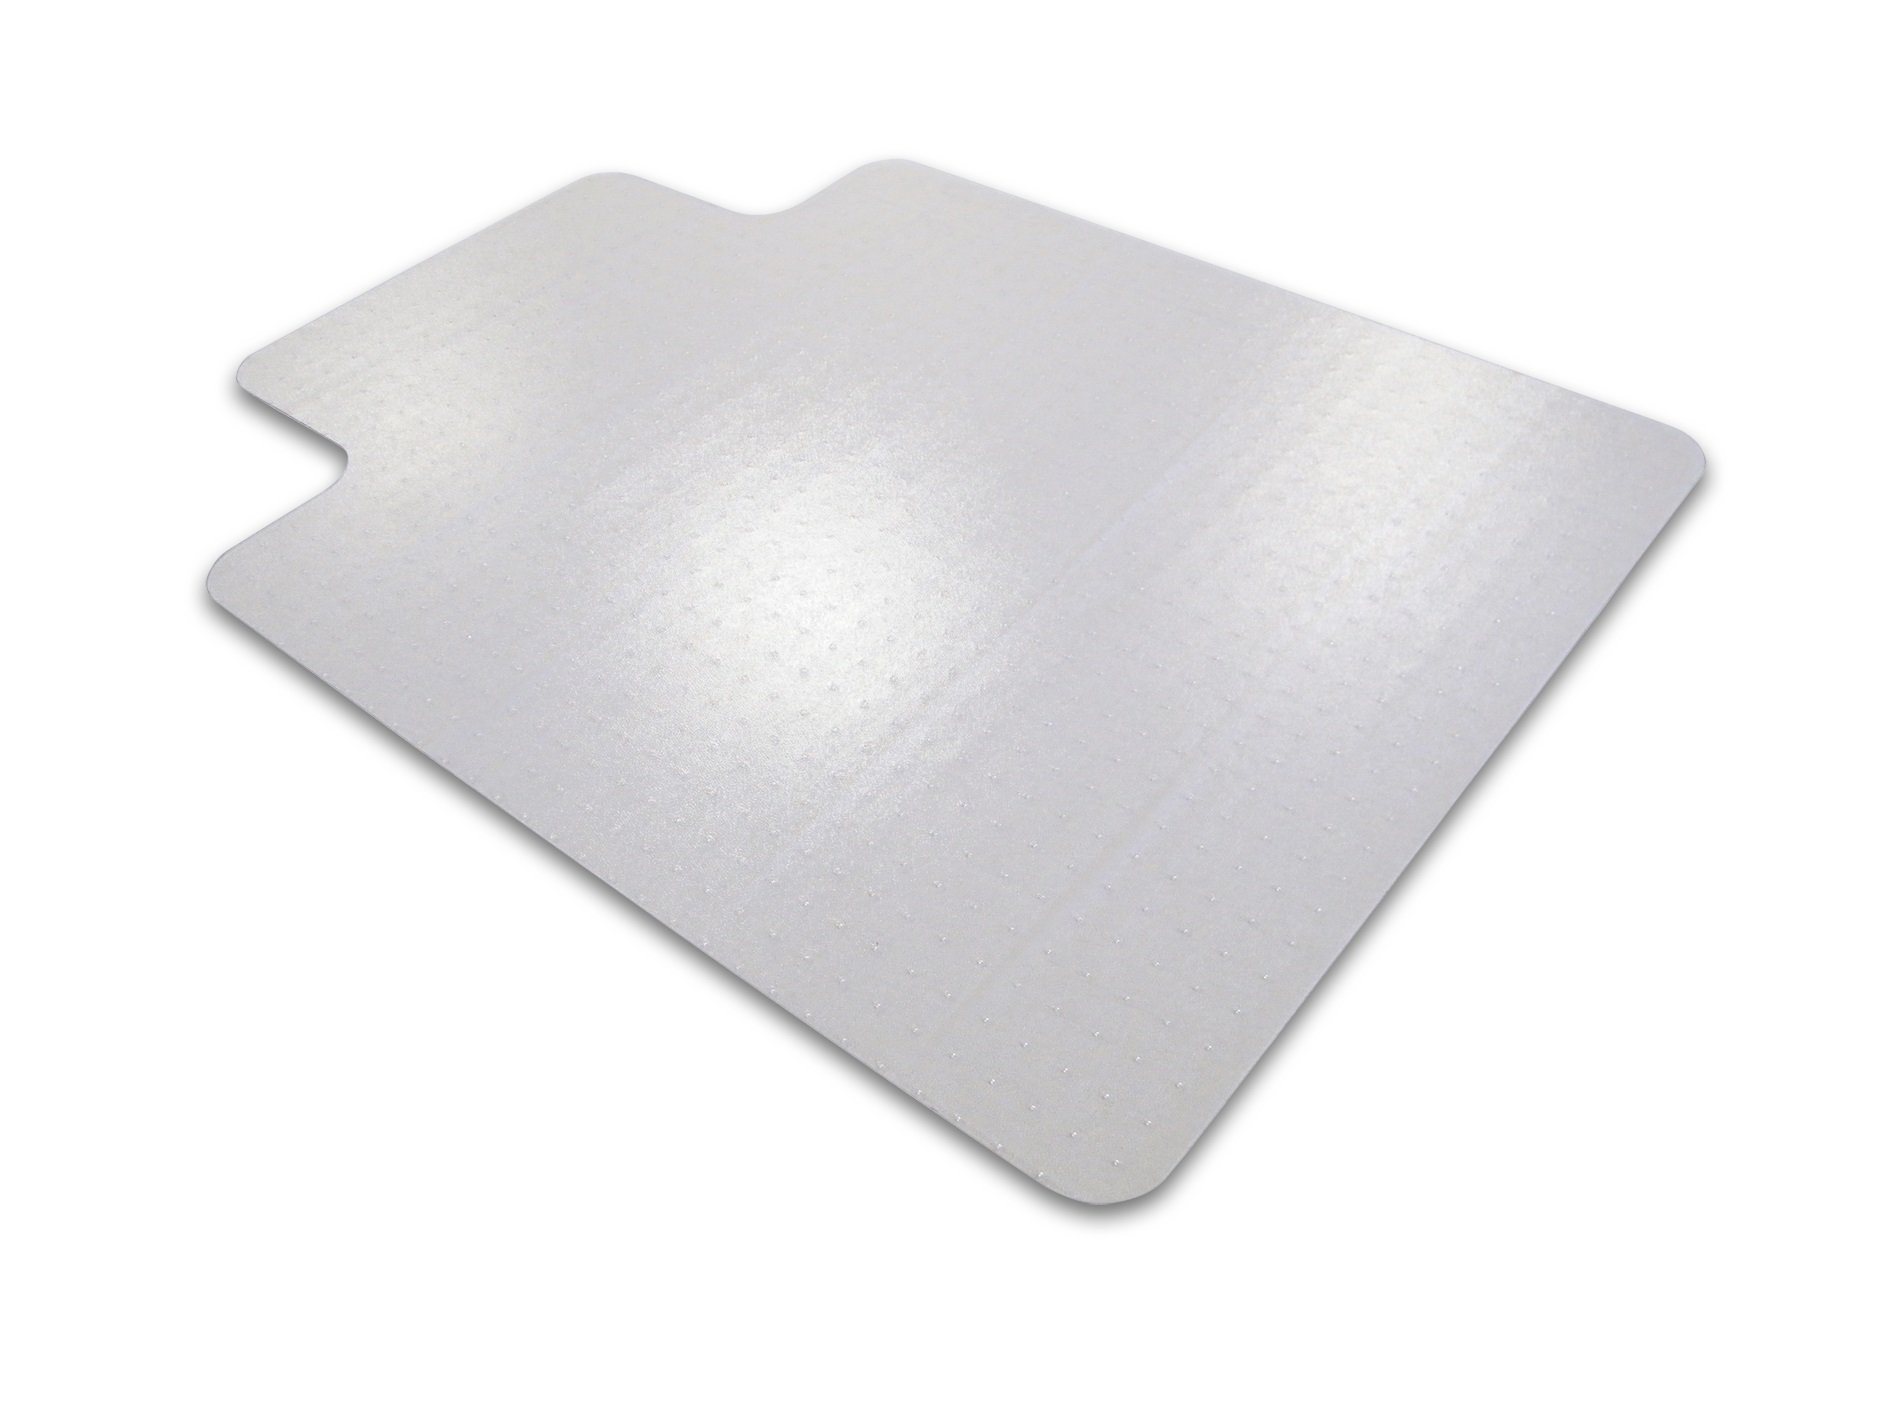 Cleartex Ultimat Chair Mat, Clear Polycarbonate, For Plush Pile Carpets over 1/2'', Rectangular with Lip, 48'' x 53'' (FR1113427LR)